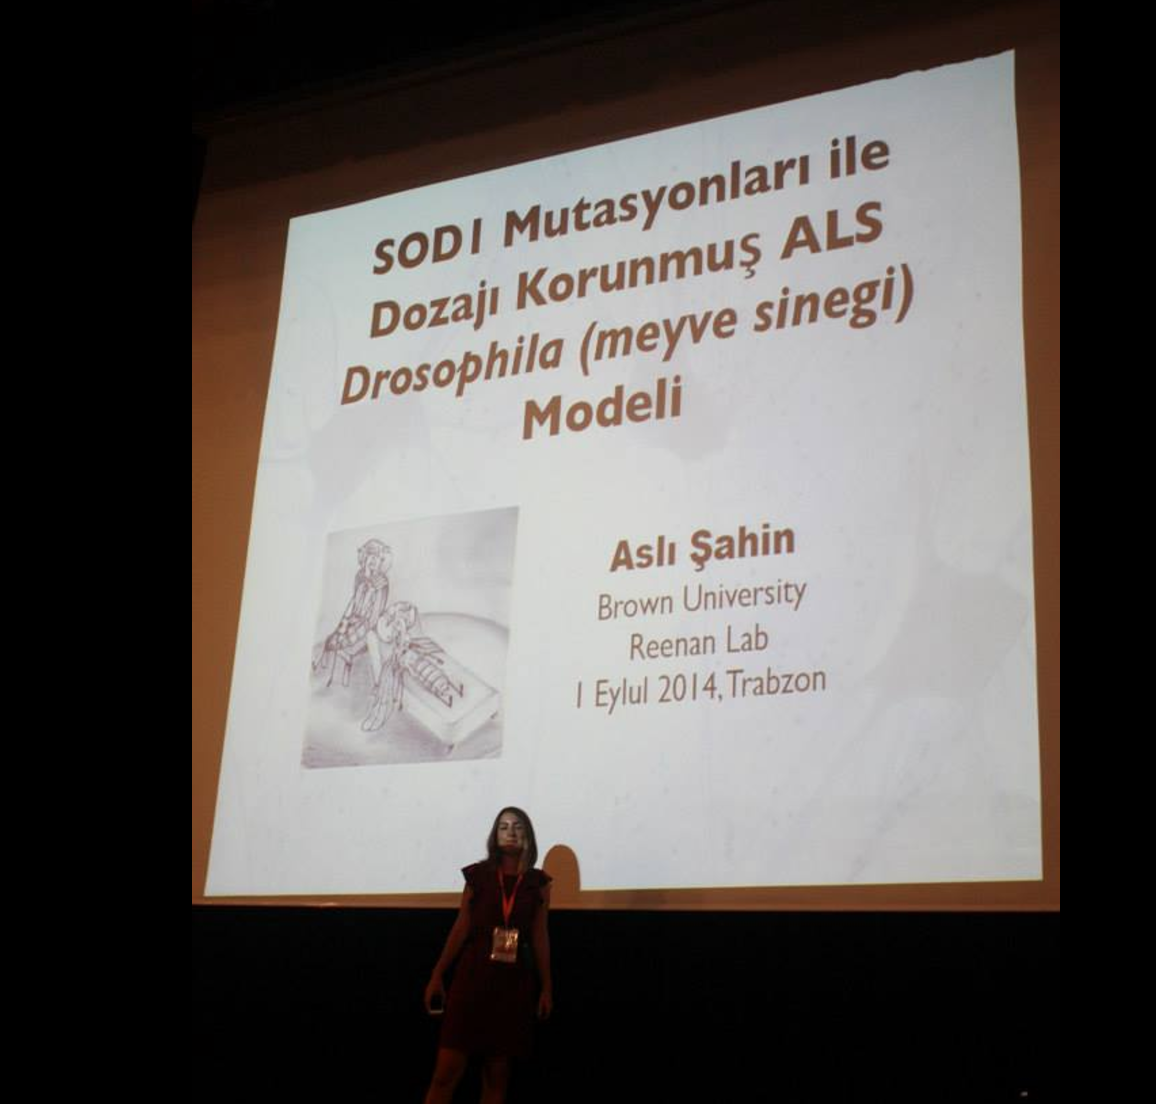 Presenting my thesis work in Turkey